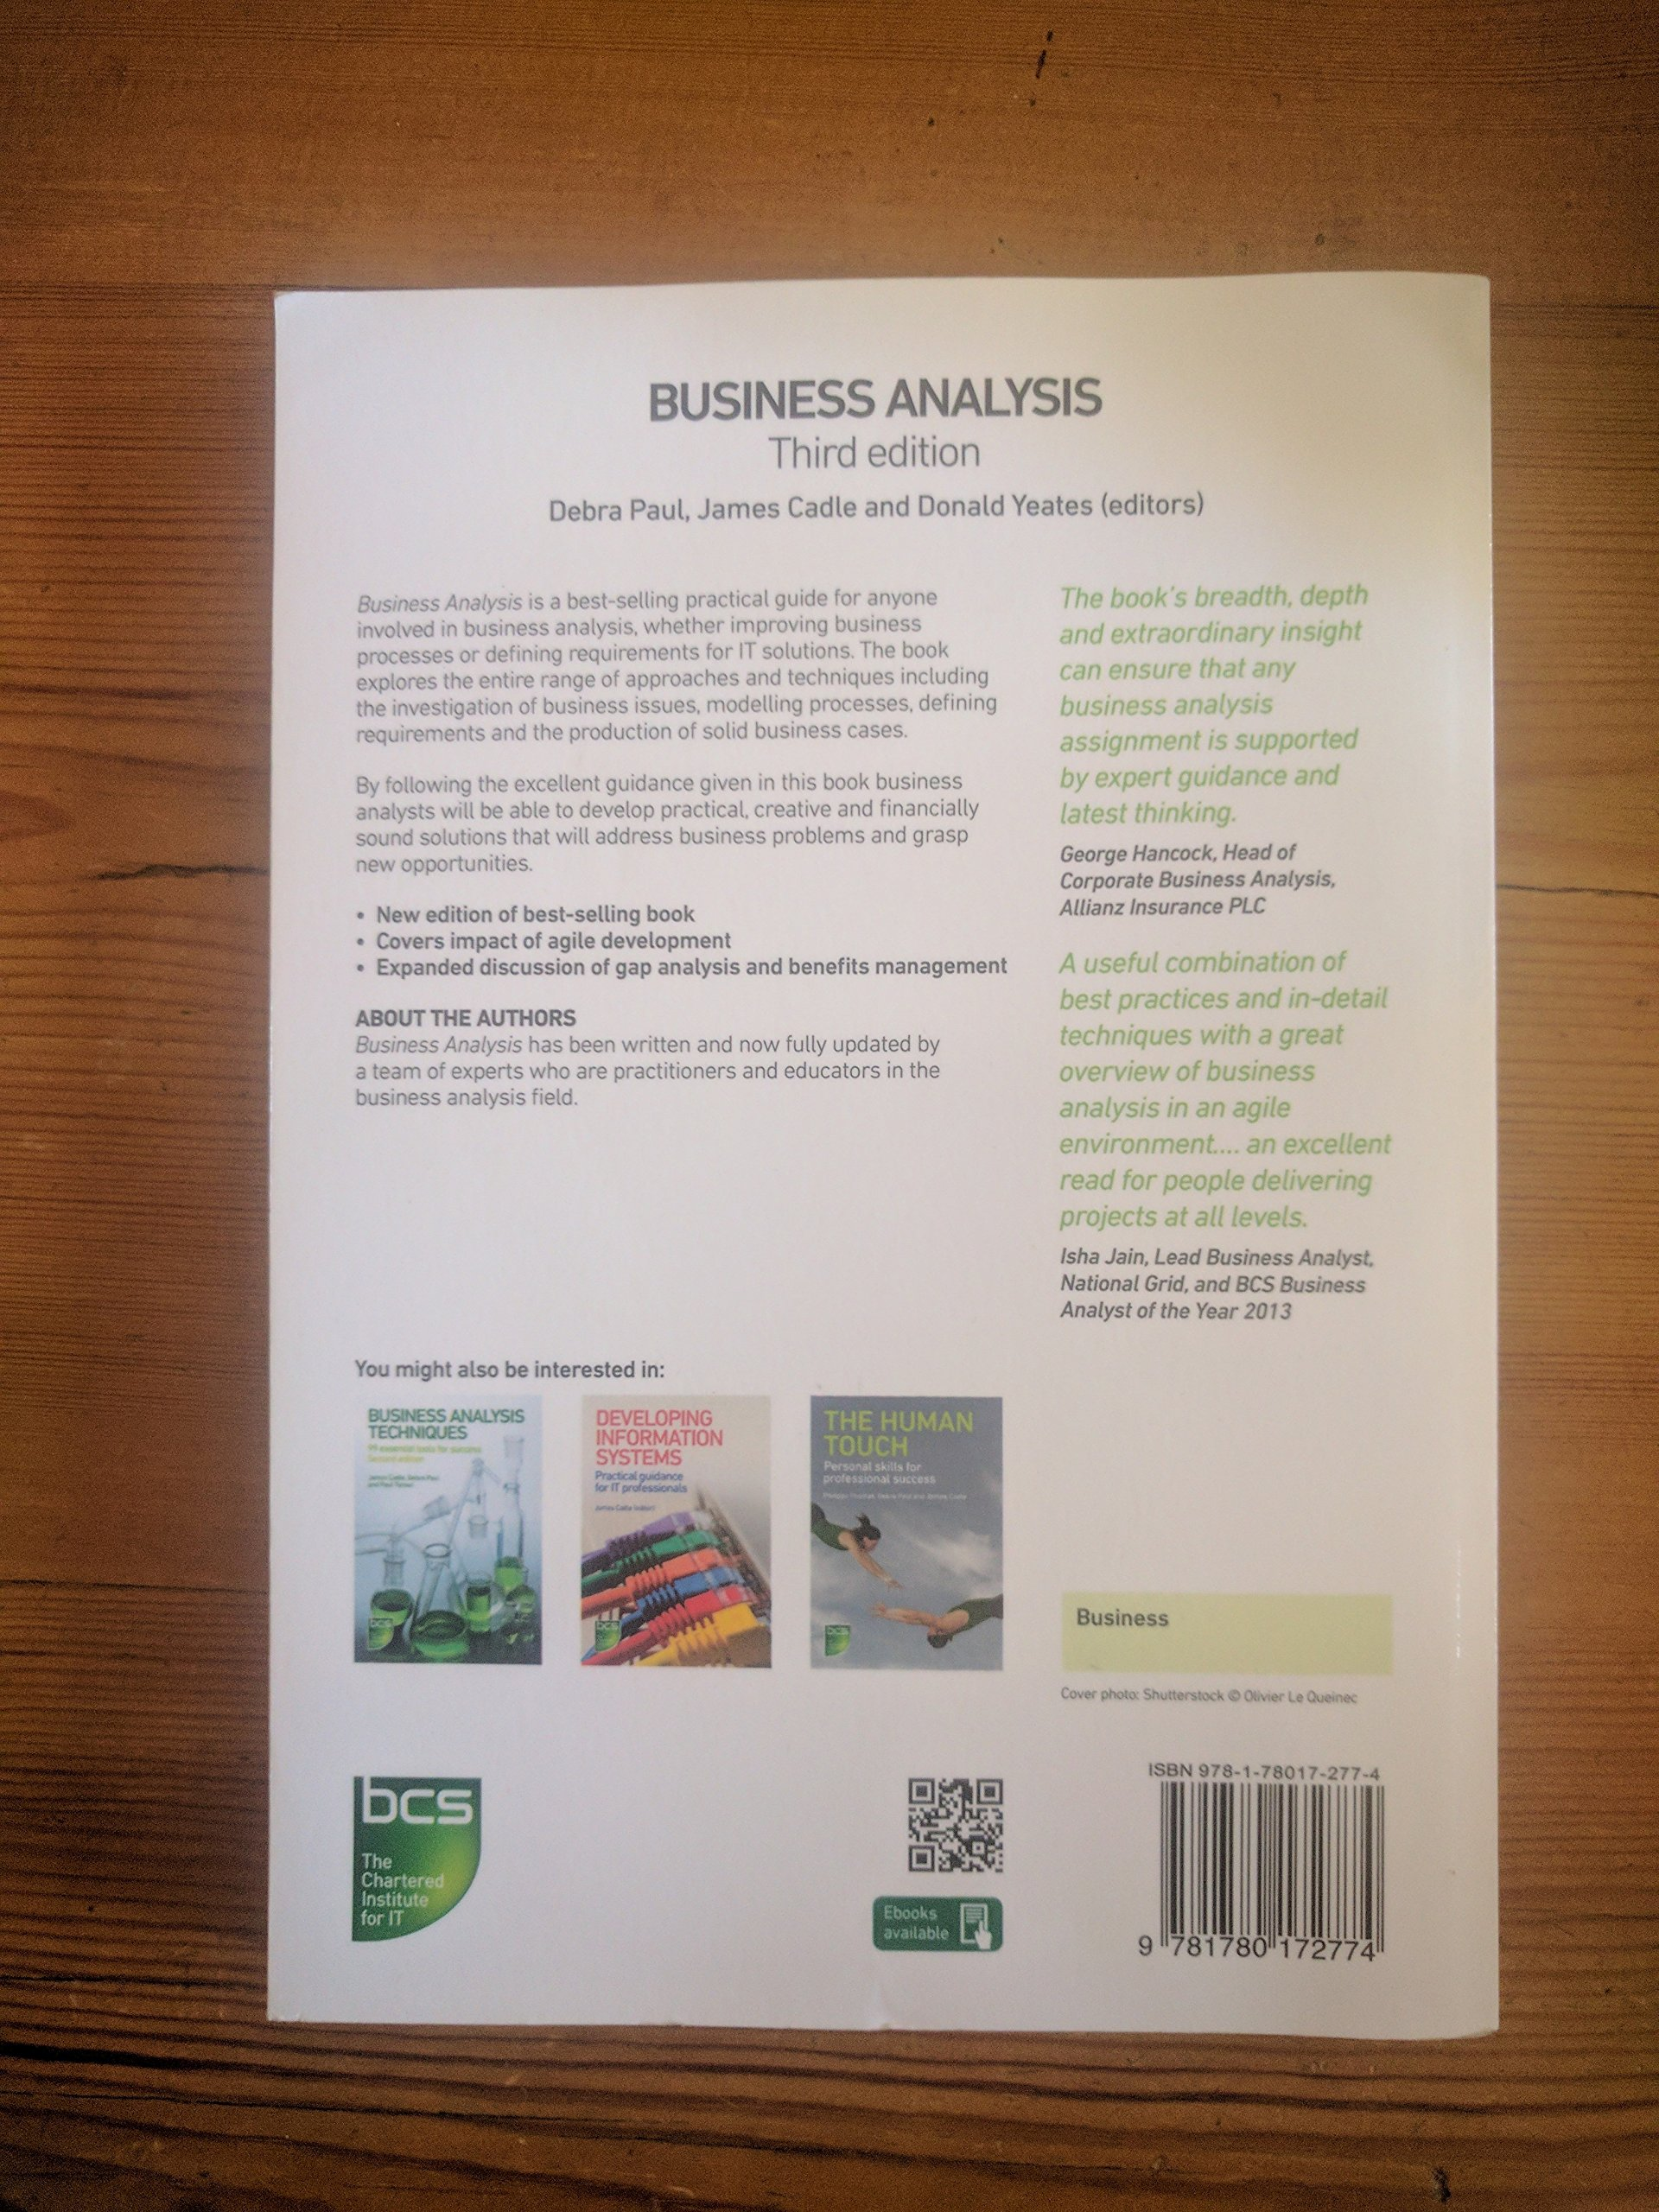 Business Analysis 3rd Edition Amazon 9781780172774 Books